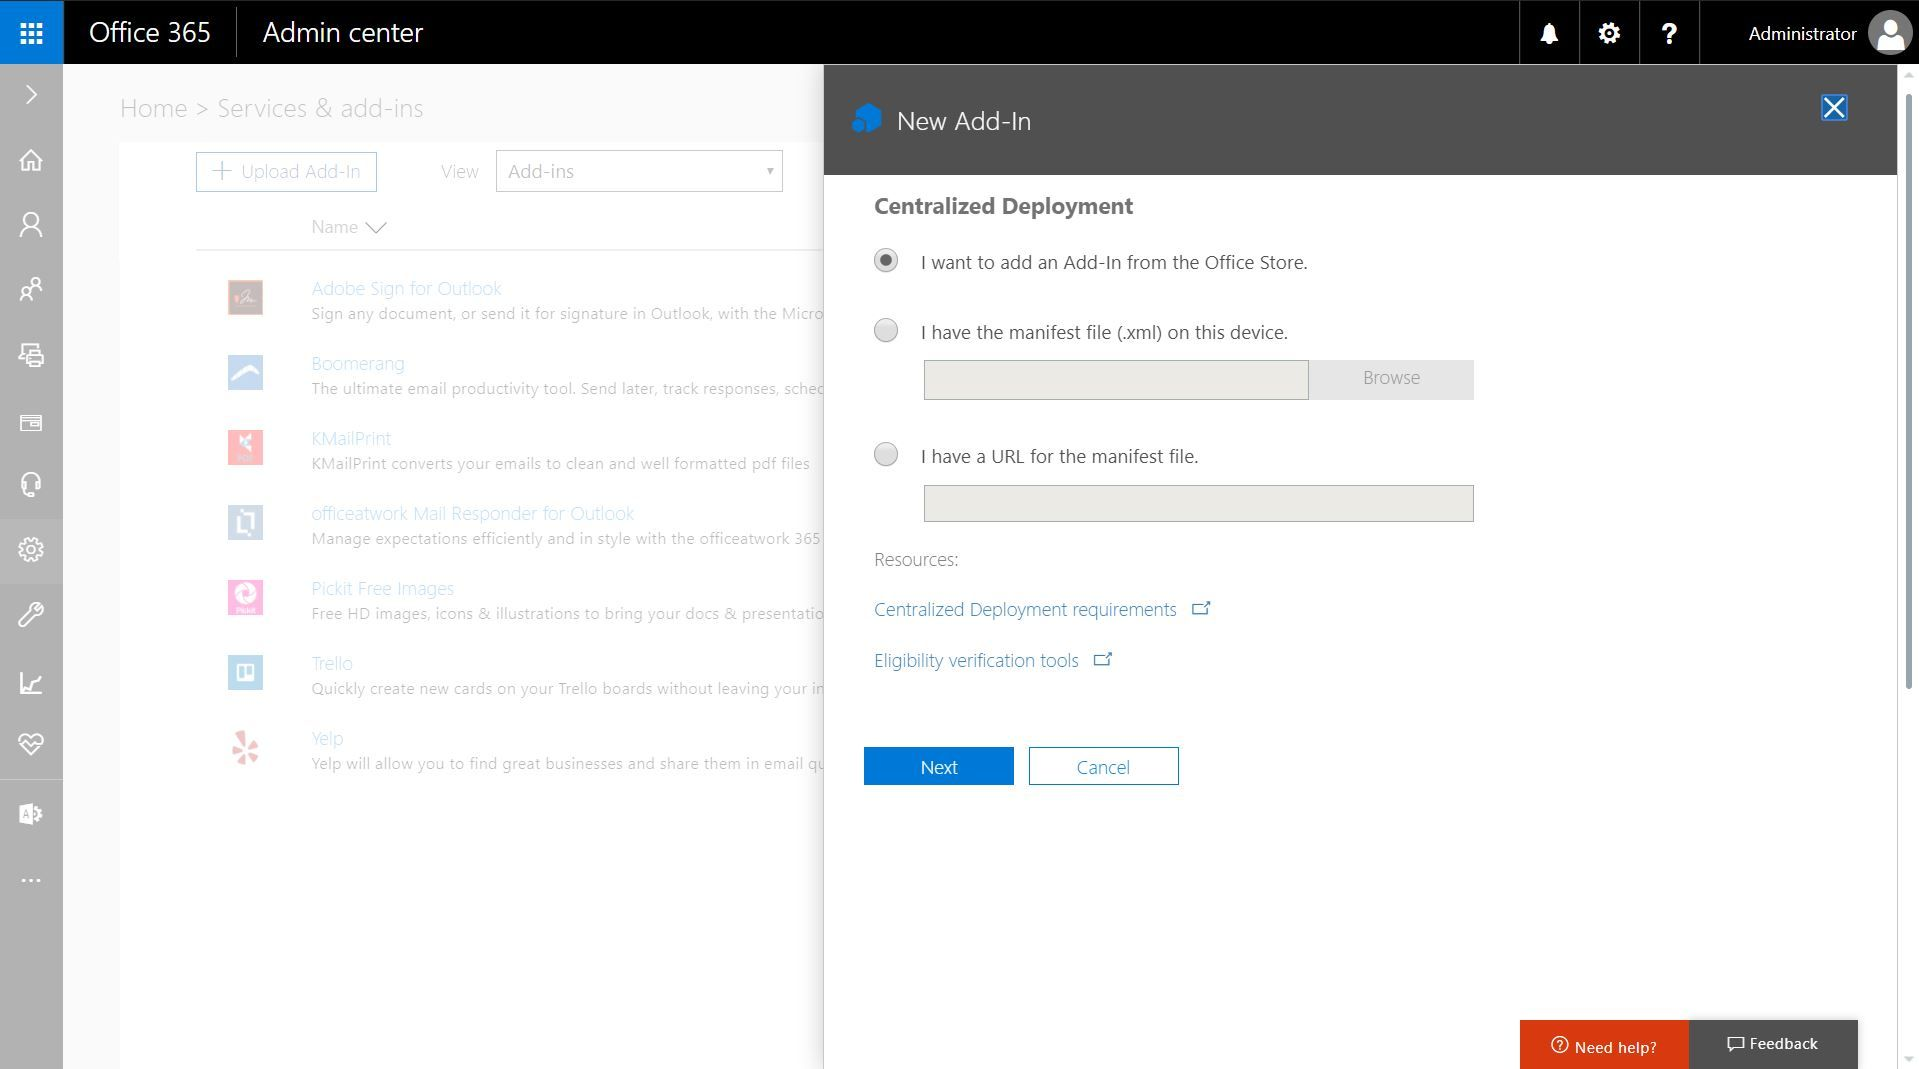 Centralized Deployment for Outlook add-ins will now be